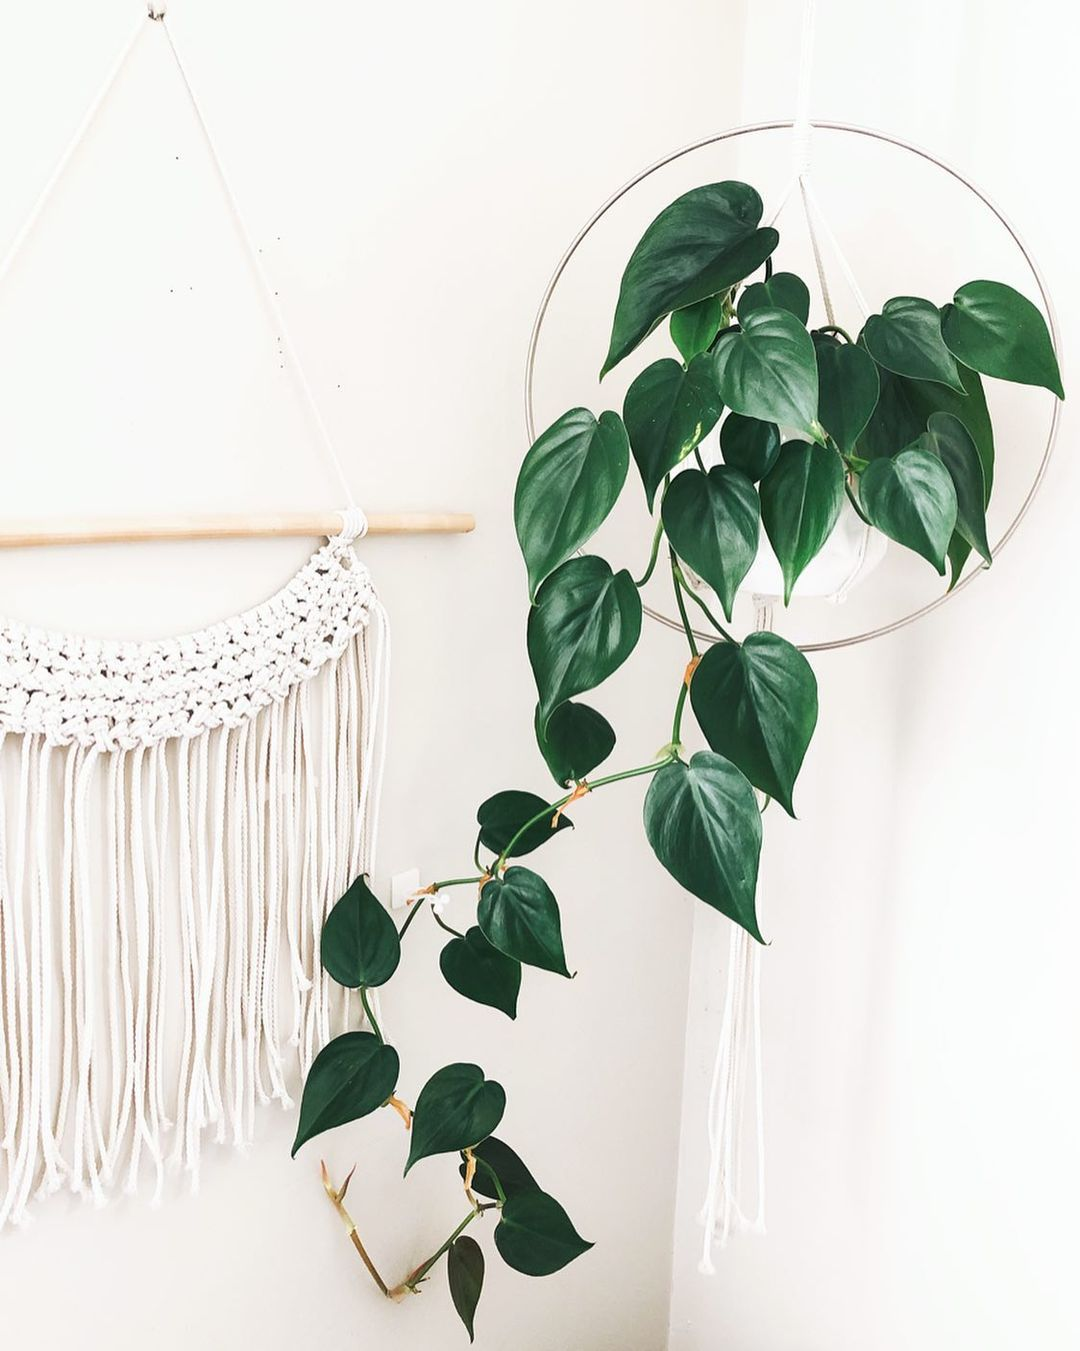 heartleaf philodendron plant on hanger with white tapestry in background